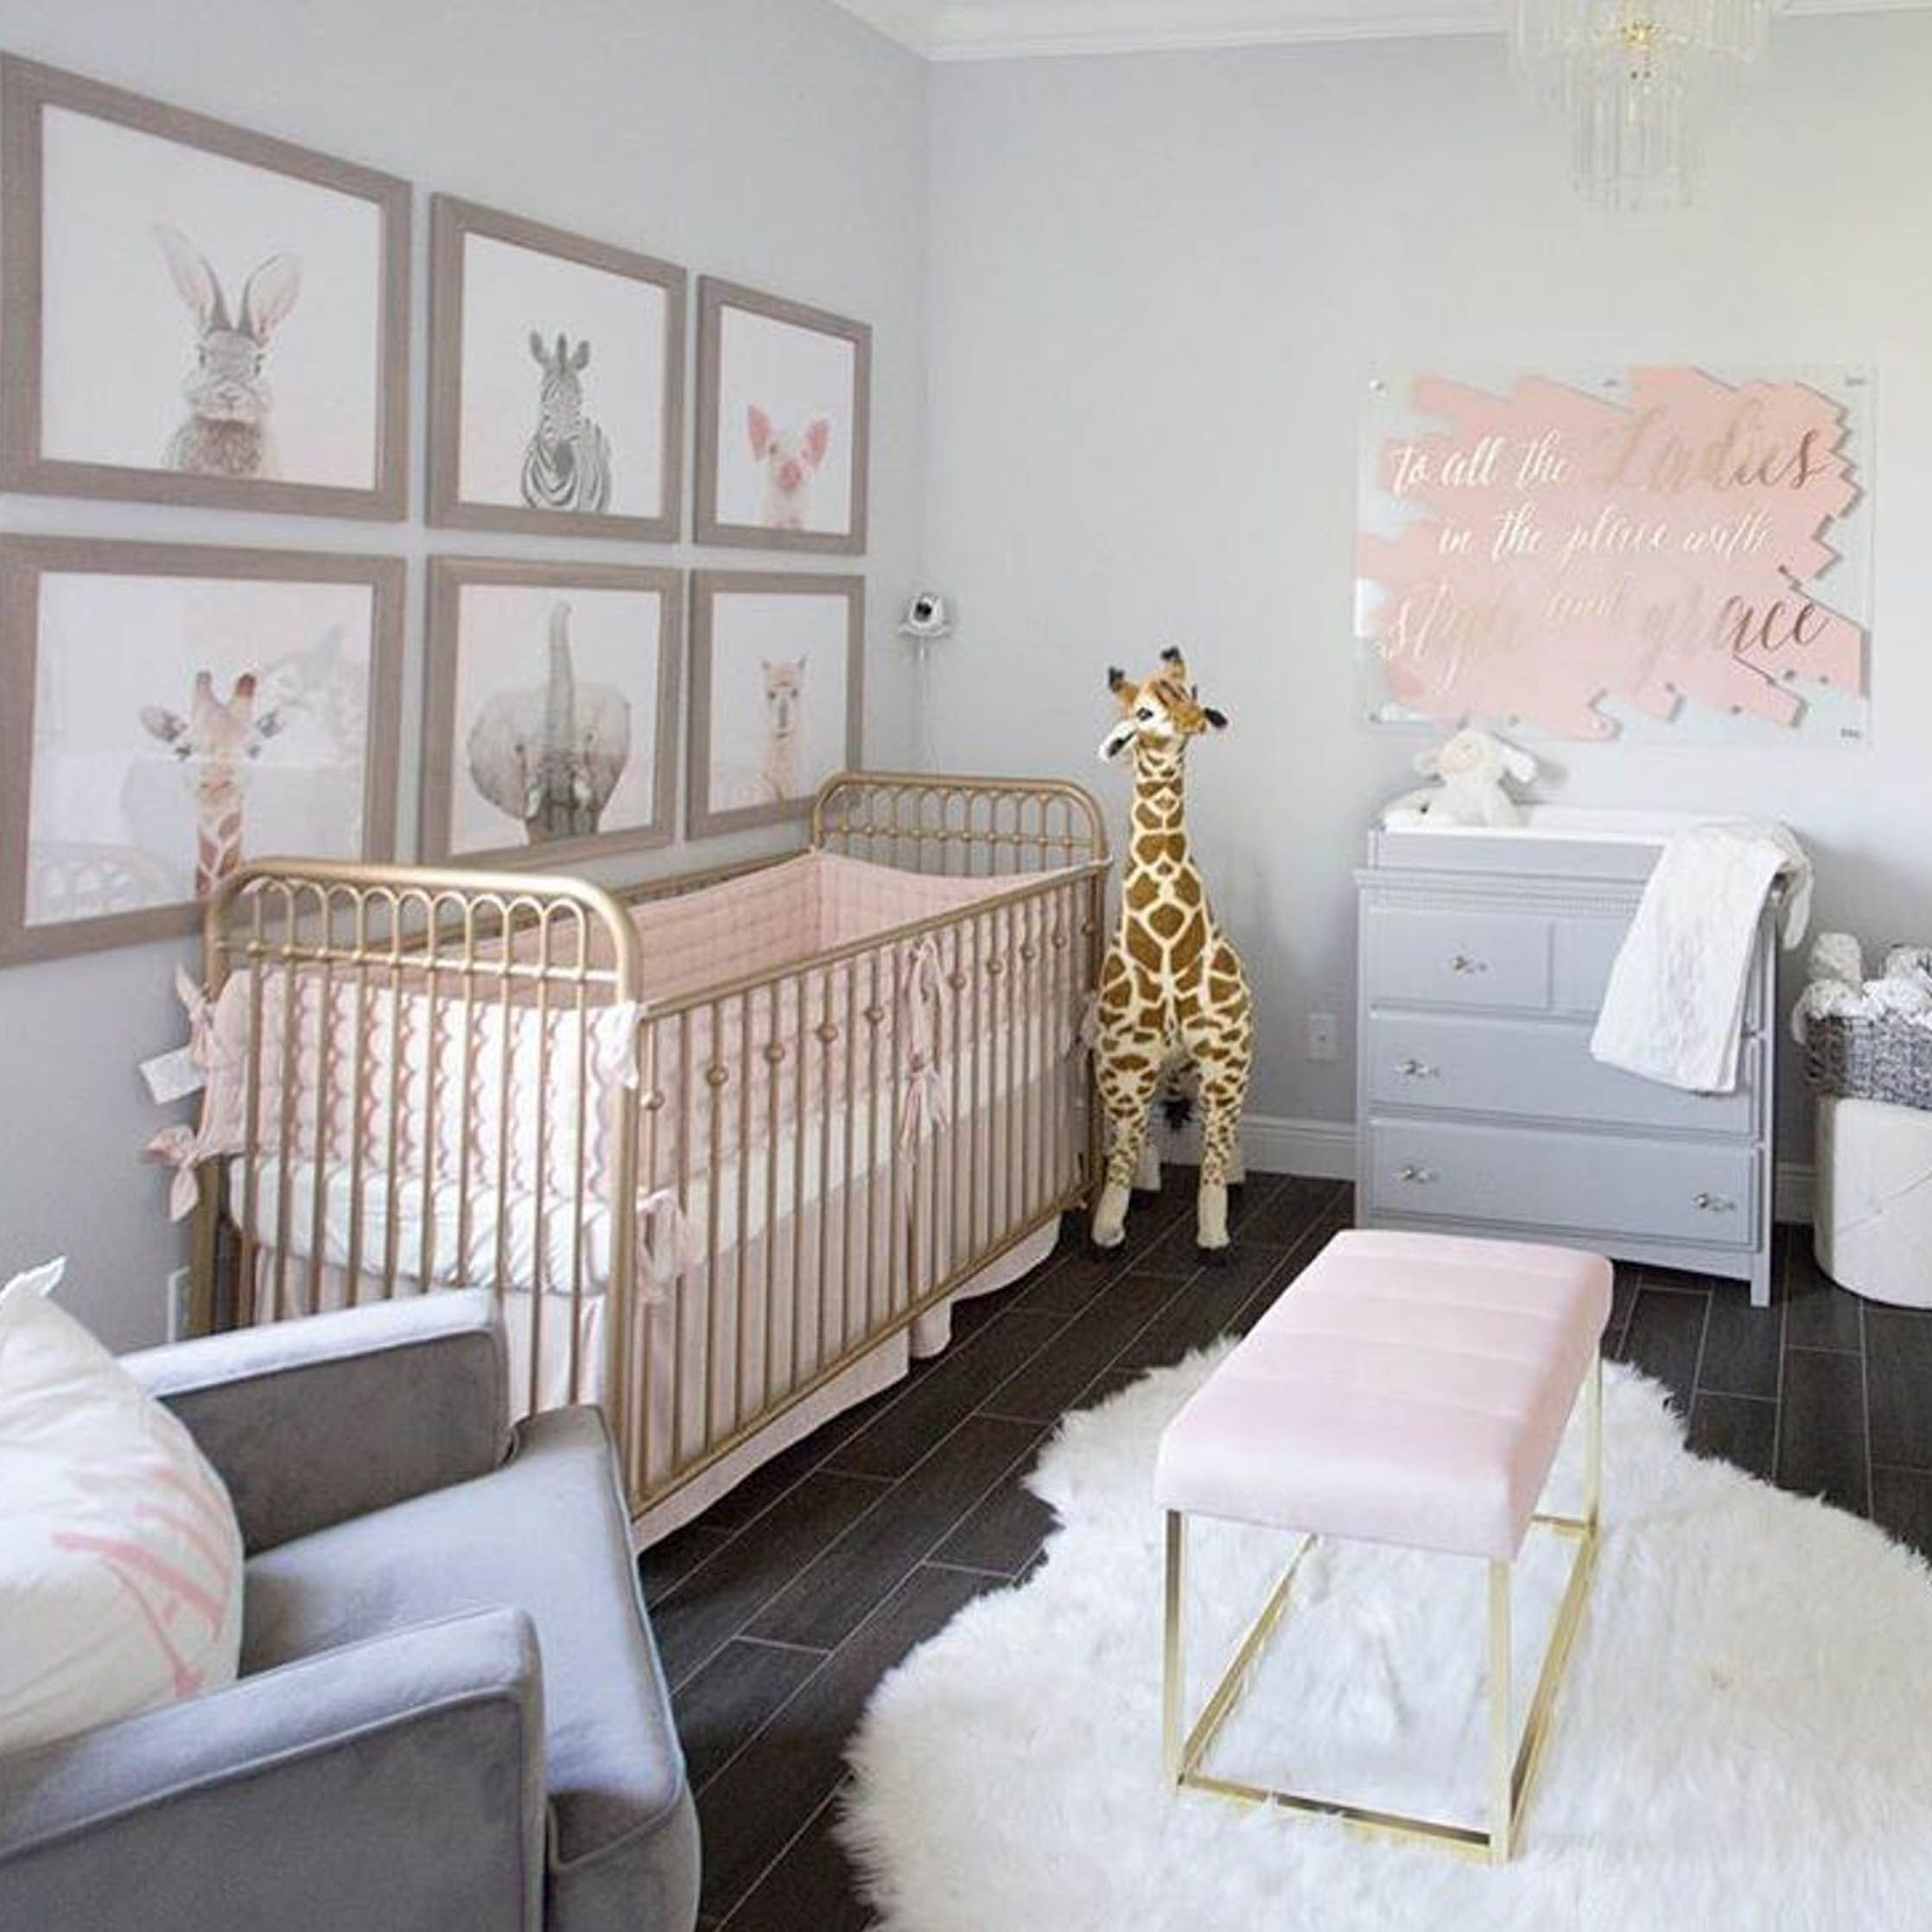 Girl And Boy Room Ideas Here 39s What 39s Trending In The Nursery